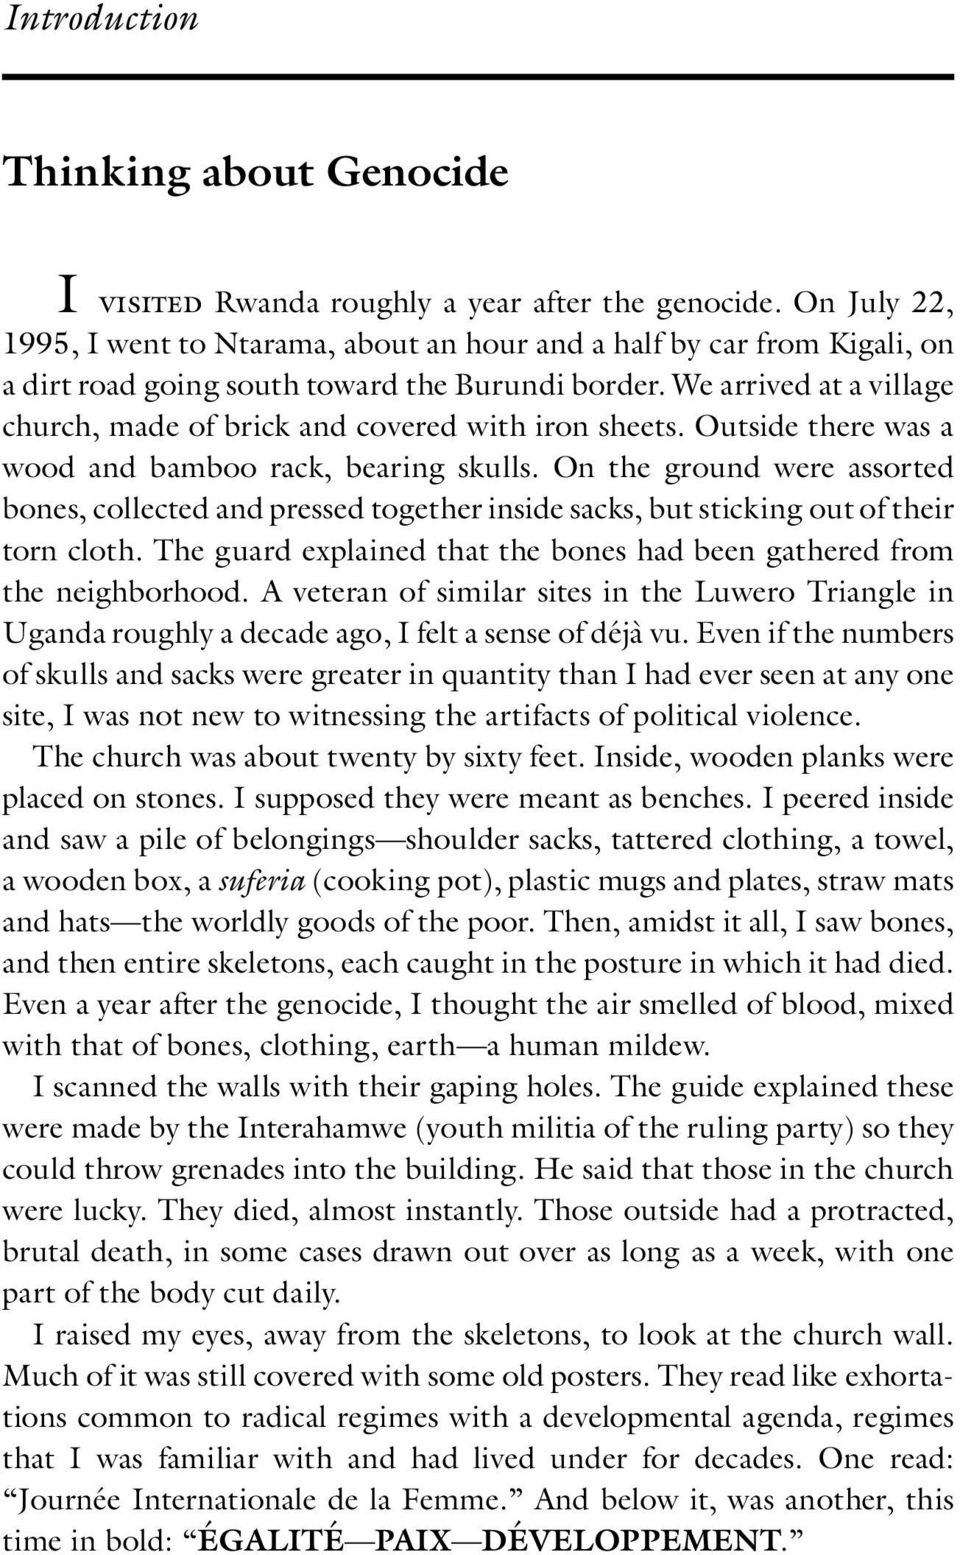 We arrived at a village church, made of brick and covered with iron sheets. Outside there was a wood and bamboo rack, bearing skulls.